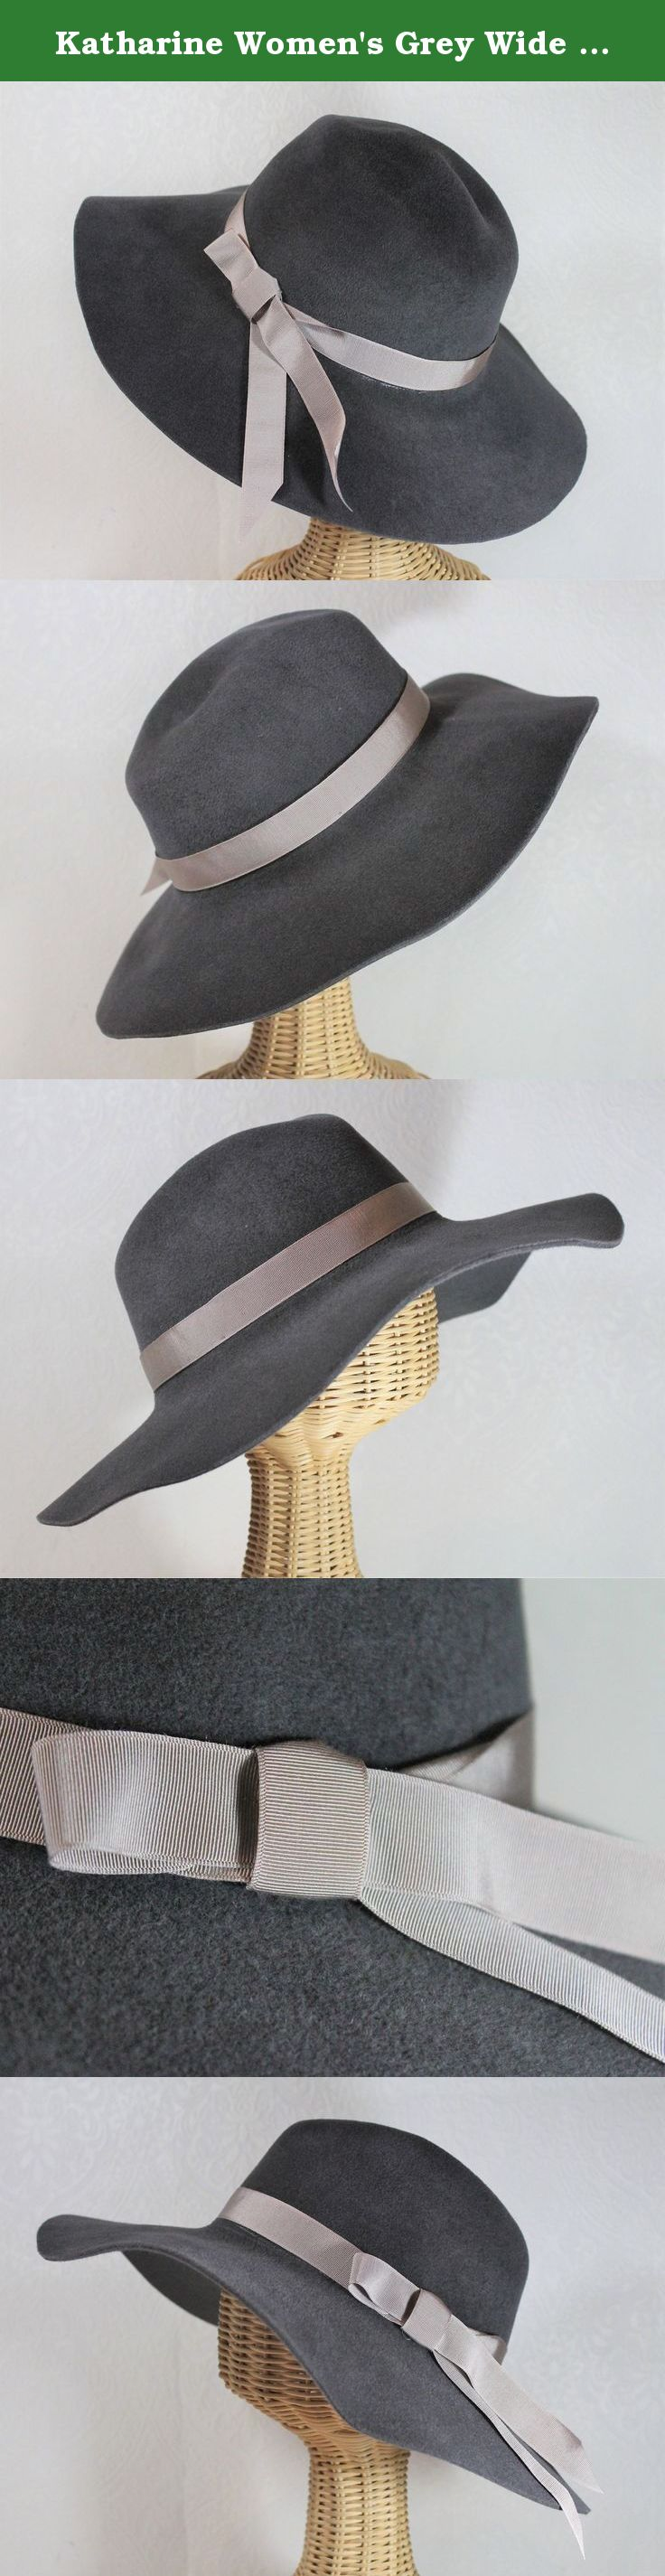 c5f9506a124 Katharine Women s Grey Wide Brim Fedora in Velour Felt. This wide-brimmed  fedora is made with hand blocked soft velour felt in grey hand trimmed with  a ...